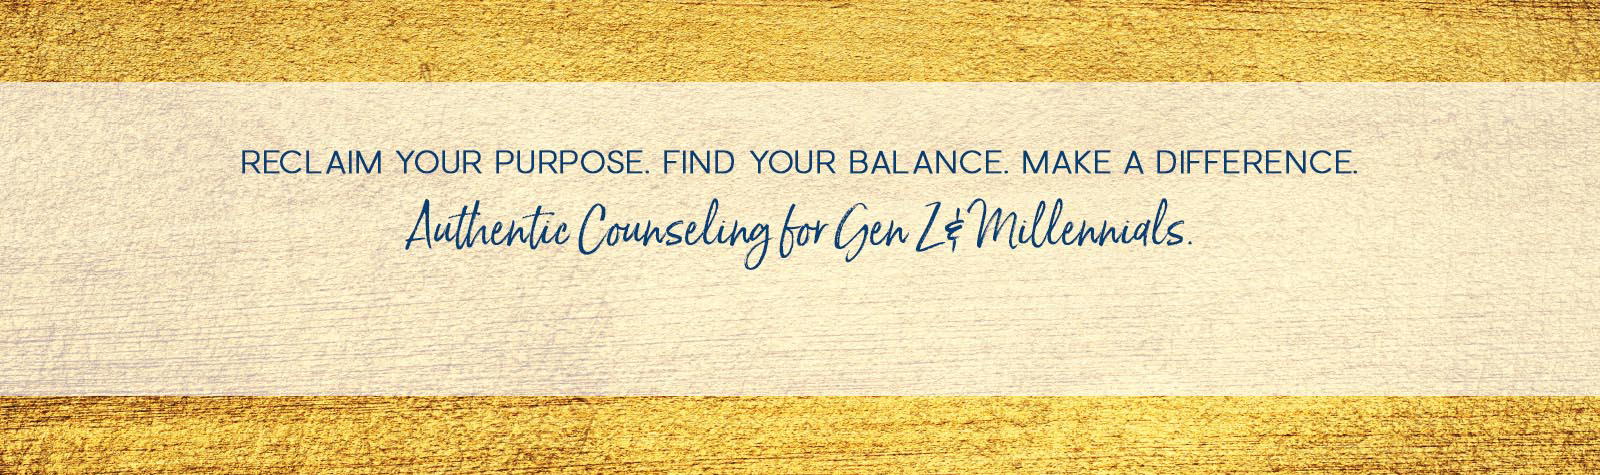 Courageous Paths Counseling